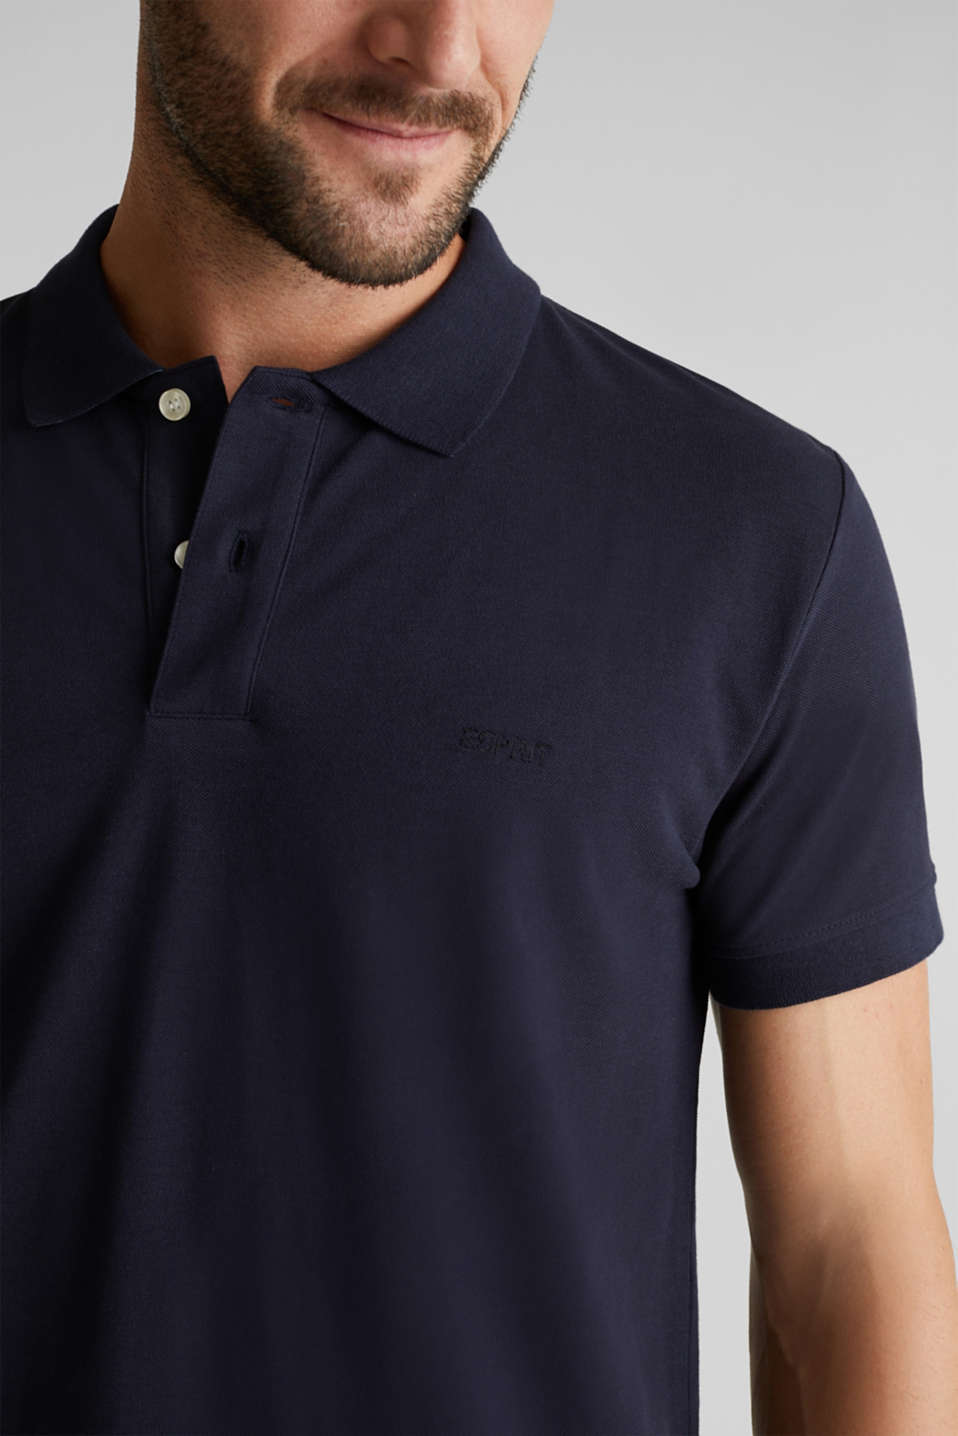 Piqué polo shirt in 100% cotton, NAVY, detail image number 1